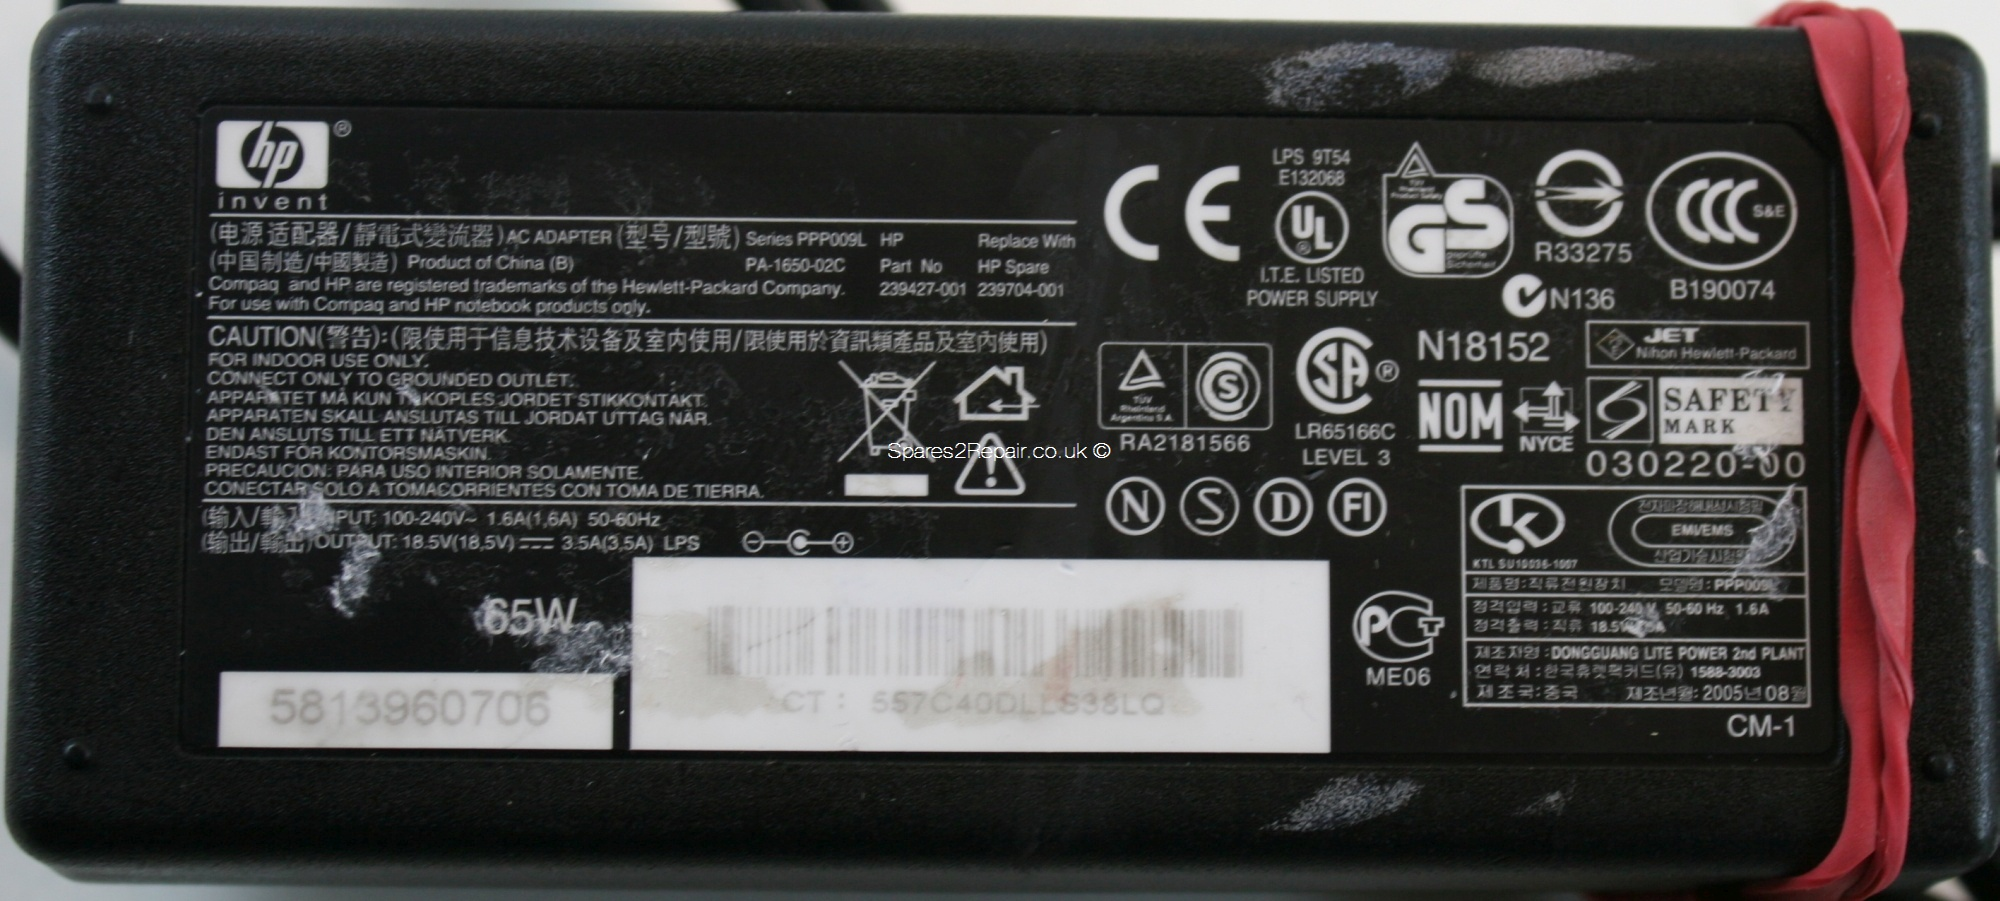 Hewlett Packard - Charger - PPP009L - PA-1650-02C - 239427-001 - 18.5V 3.5A (Original)